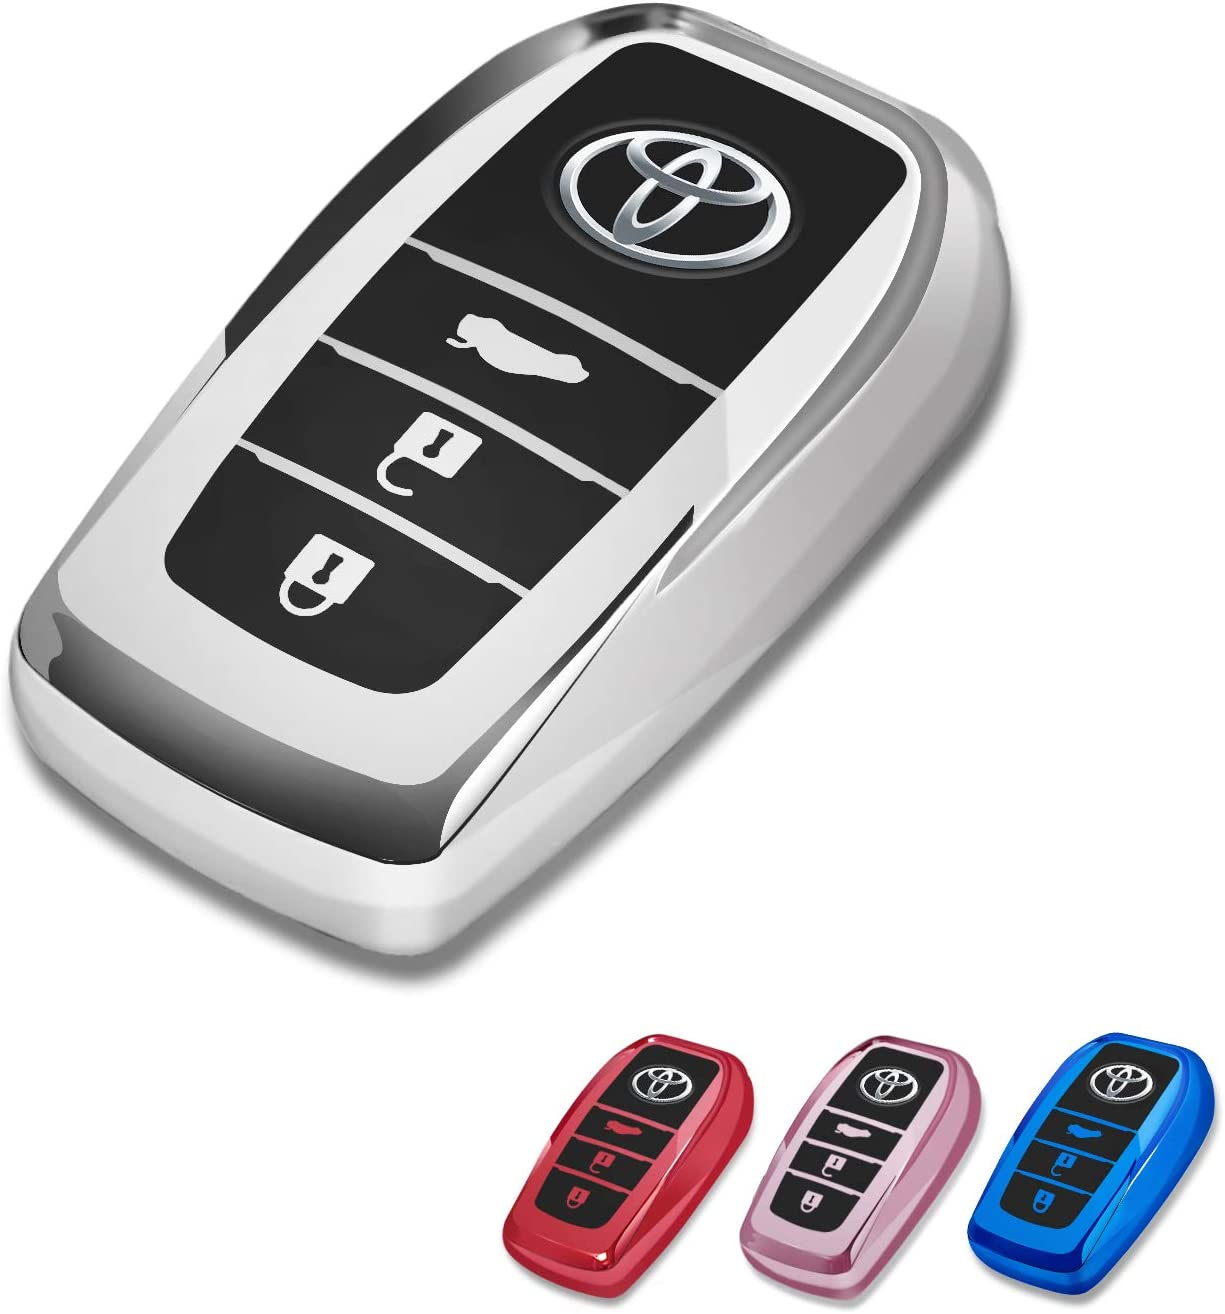 Key Fob Case for Toyota camry RAV4 COROLLA highlander CROWN LAND CRUISER PRADO 3 Buttons Smart Remote Premium Soft TPU Toyota Key Fob Holder Silver for Toyota Key Fob Cover